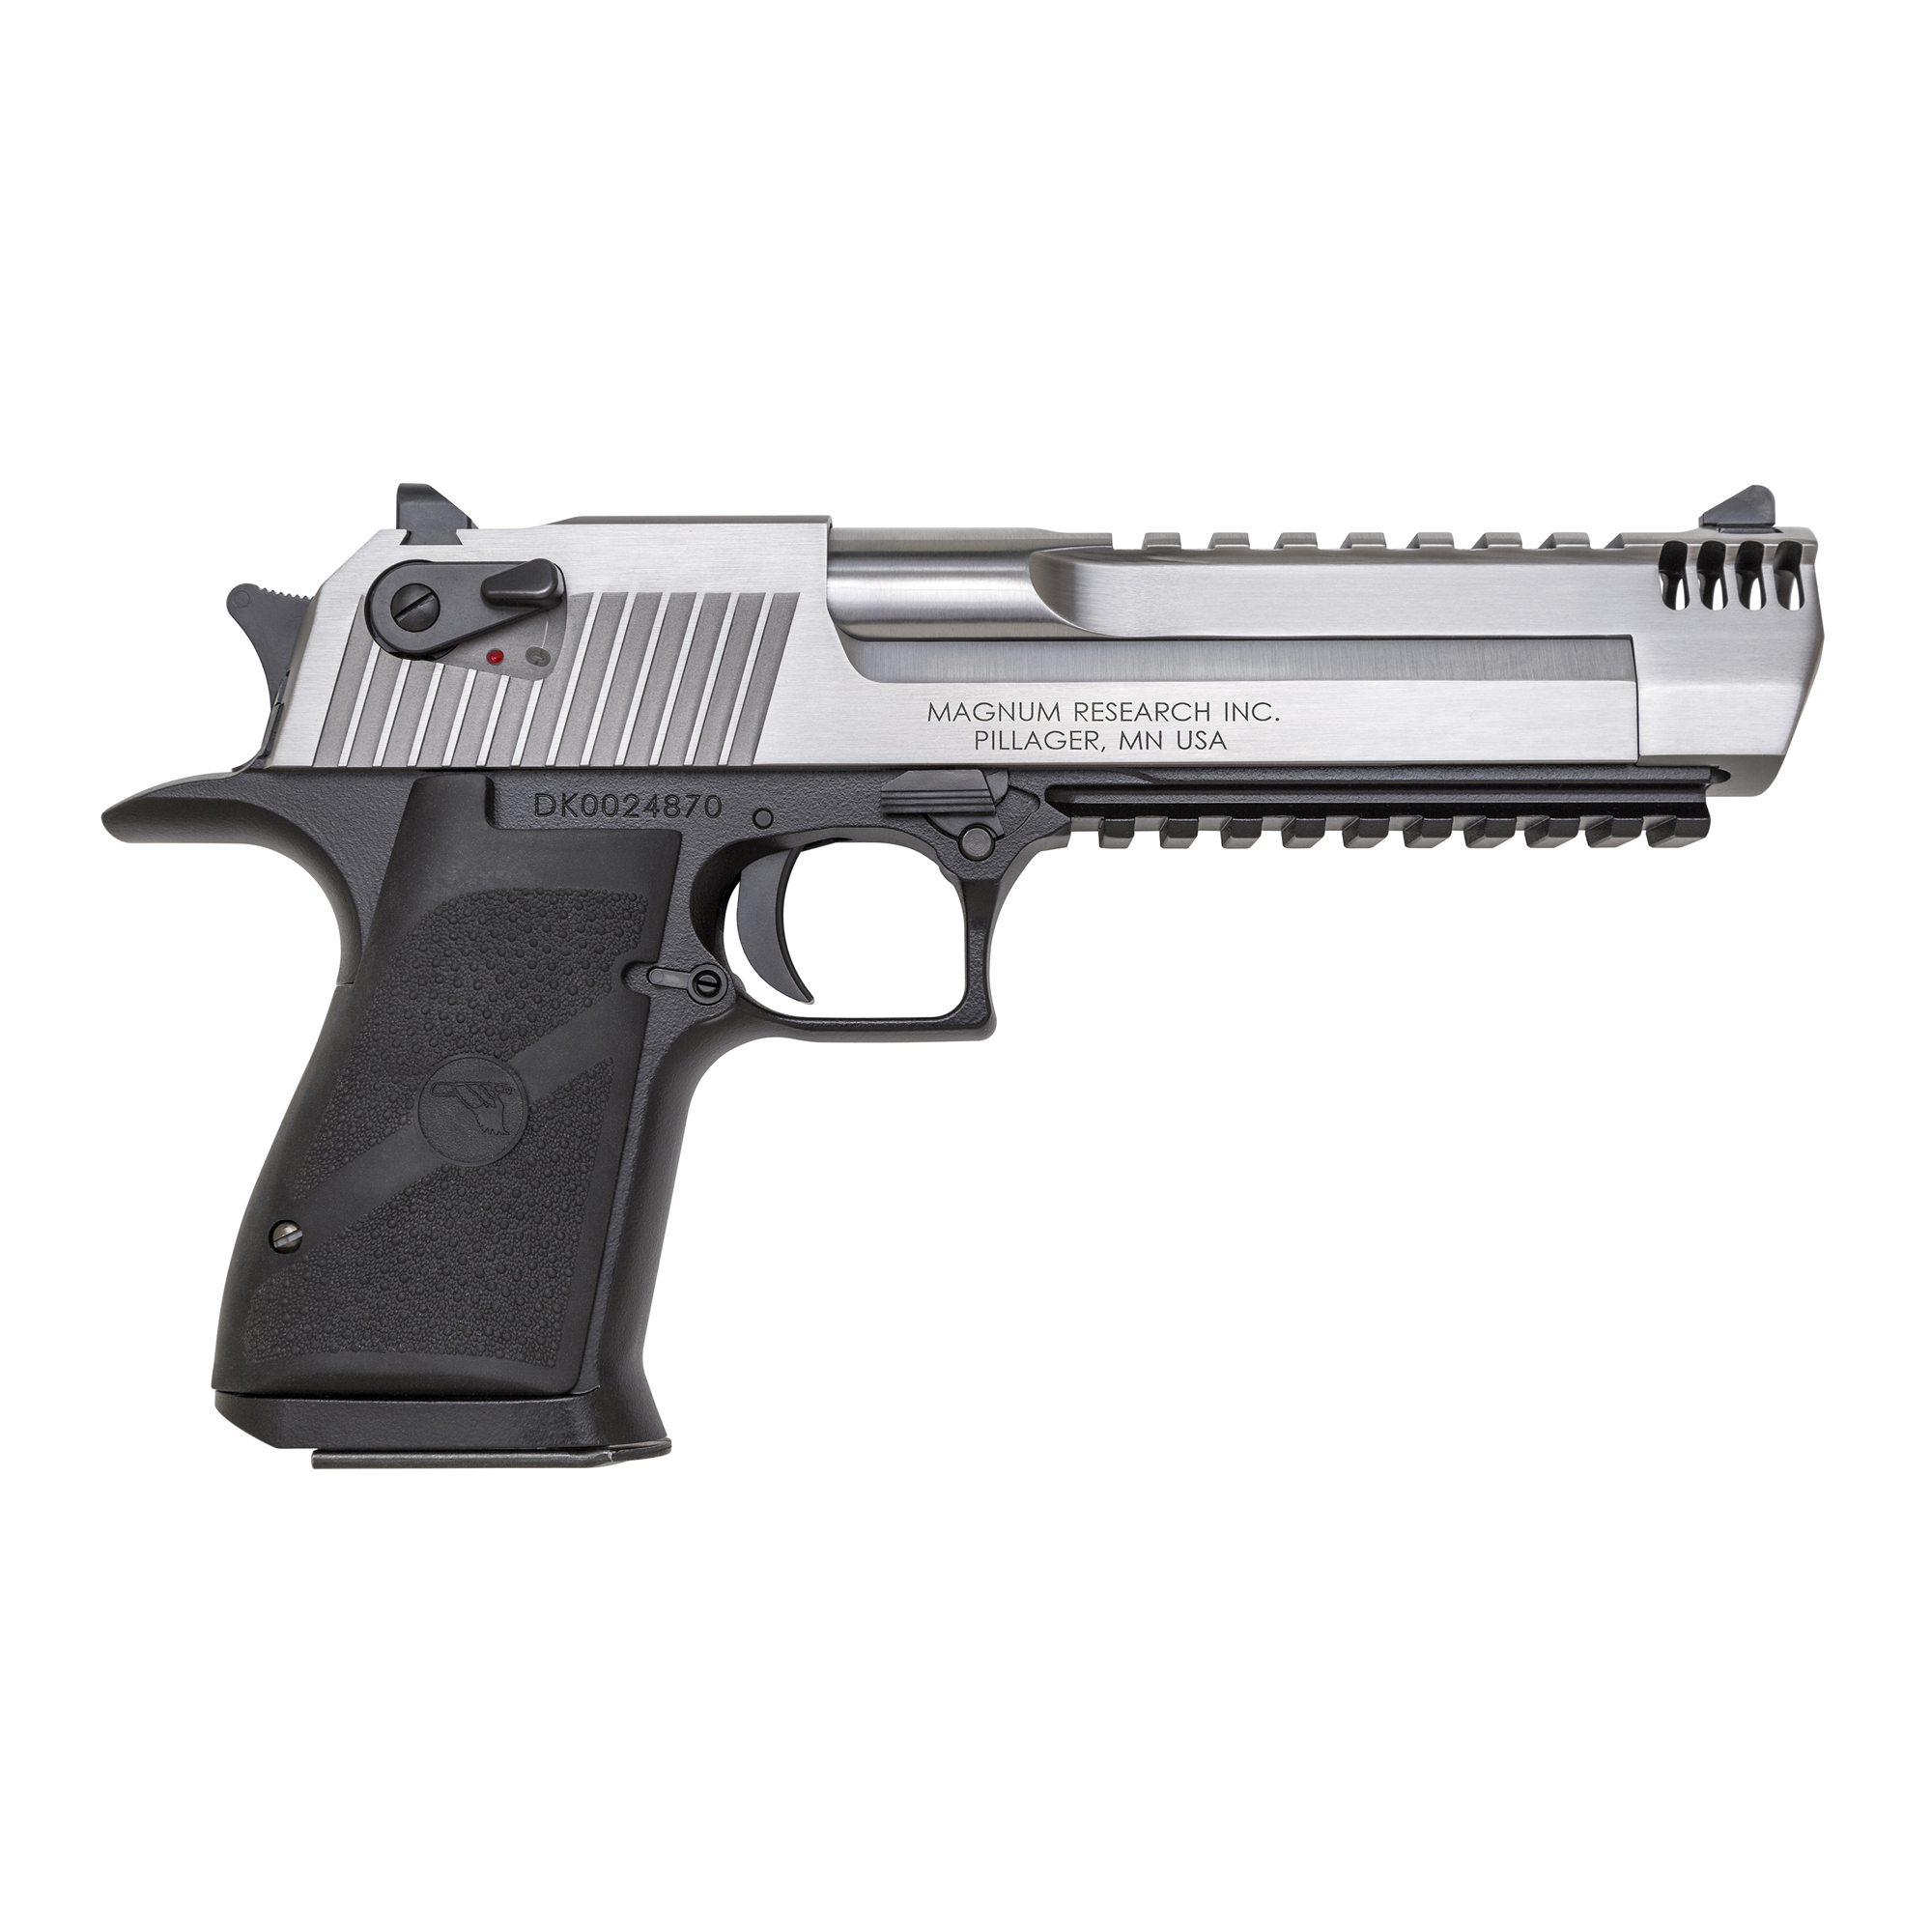 """After 25 years of being accessorized"""" customized and re-imagined in countless movies"""" television shows and video games"""" the Desert Eagle(R) Pistol has emerged as a pop-culture icon. You can customize your Desert Eagle Pistol with a variety of impressive finishes to add your own distinctive twist to this timeless firearm. All models feature a full Weaver style accessory rail on the barrel from the end of the chamber to right behind the front sight and standard ambidextrous safeties. Includes one 7-round magazine."""